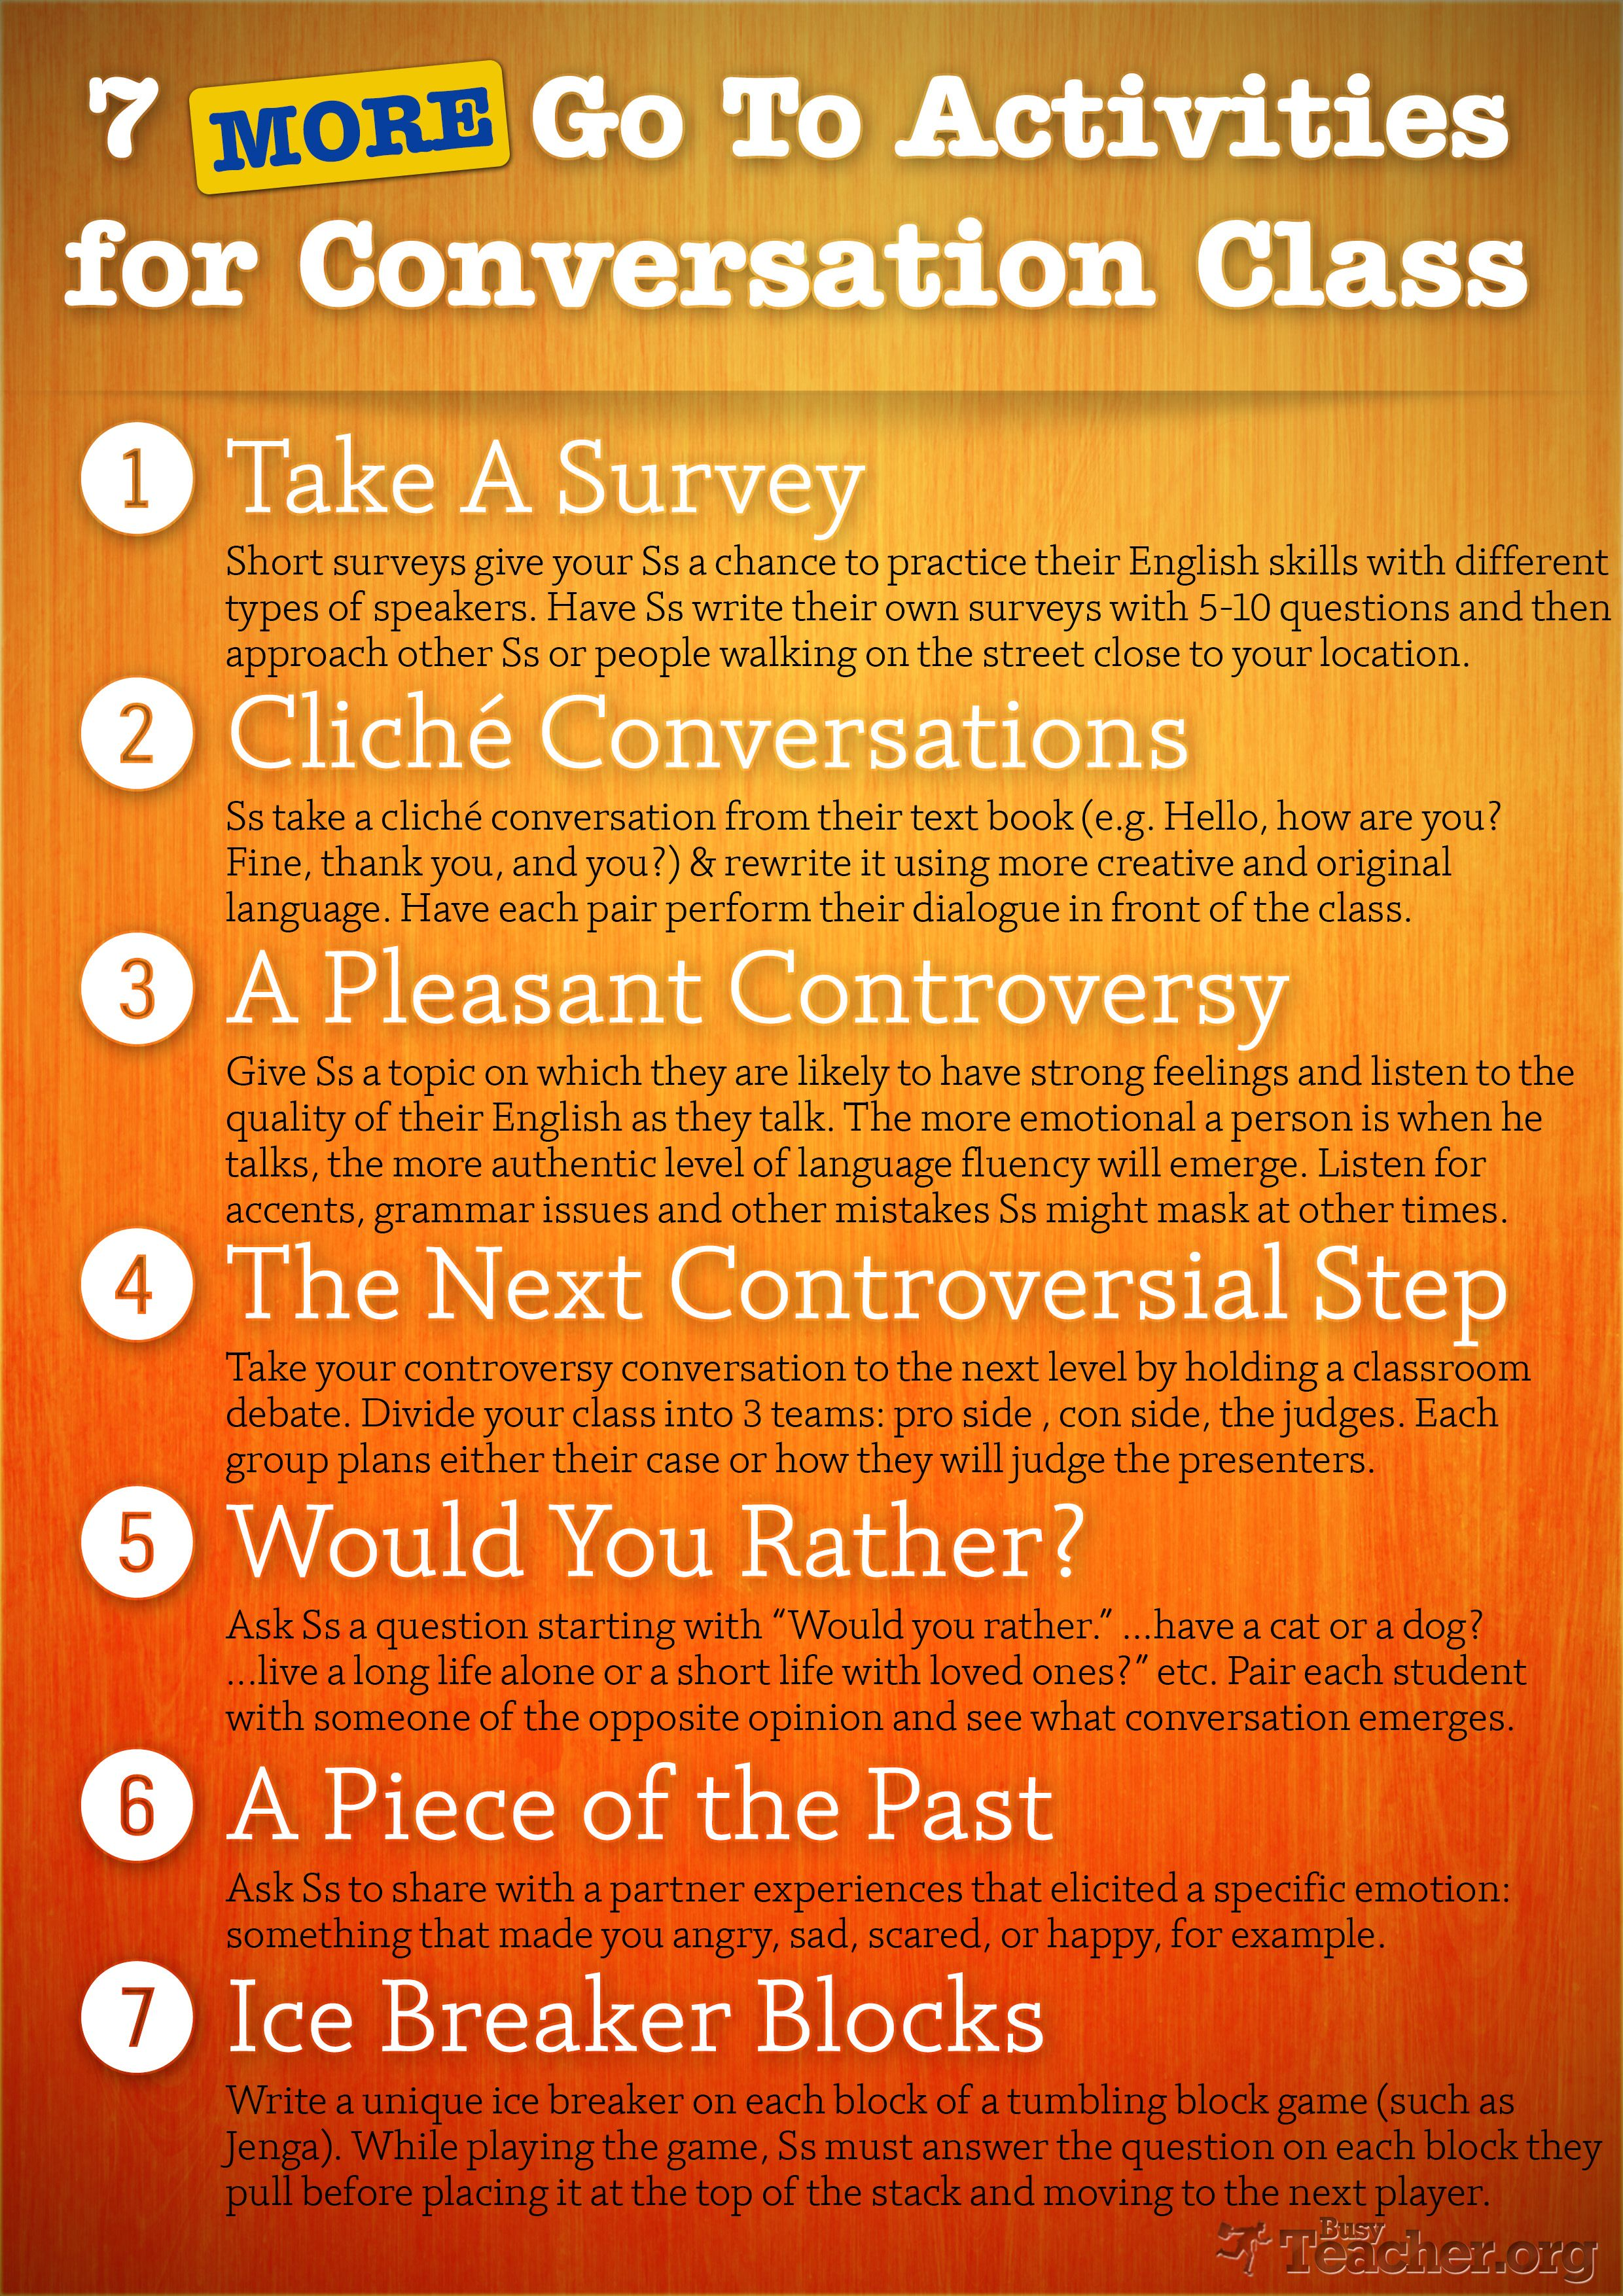 7 More Activities For Conversation Class